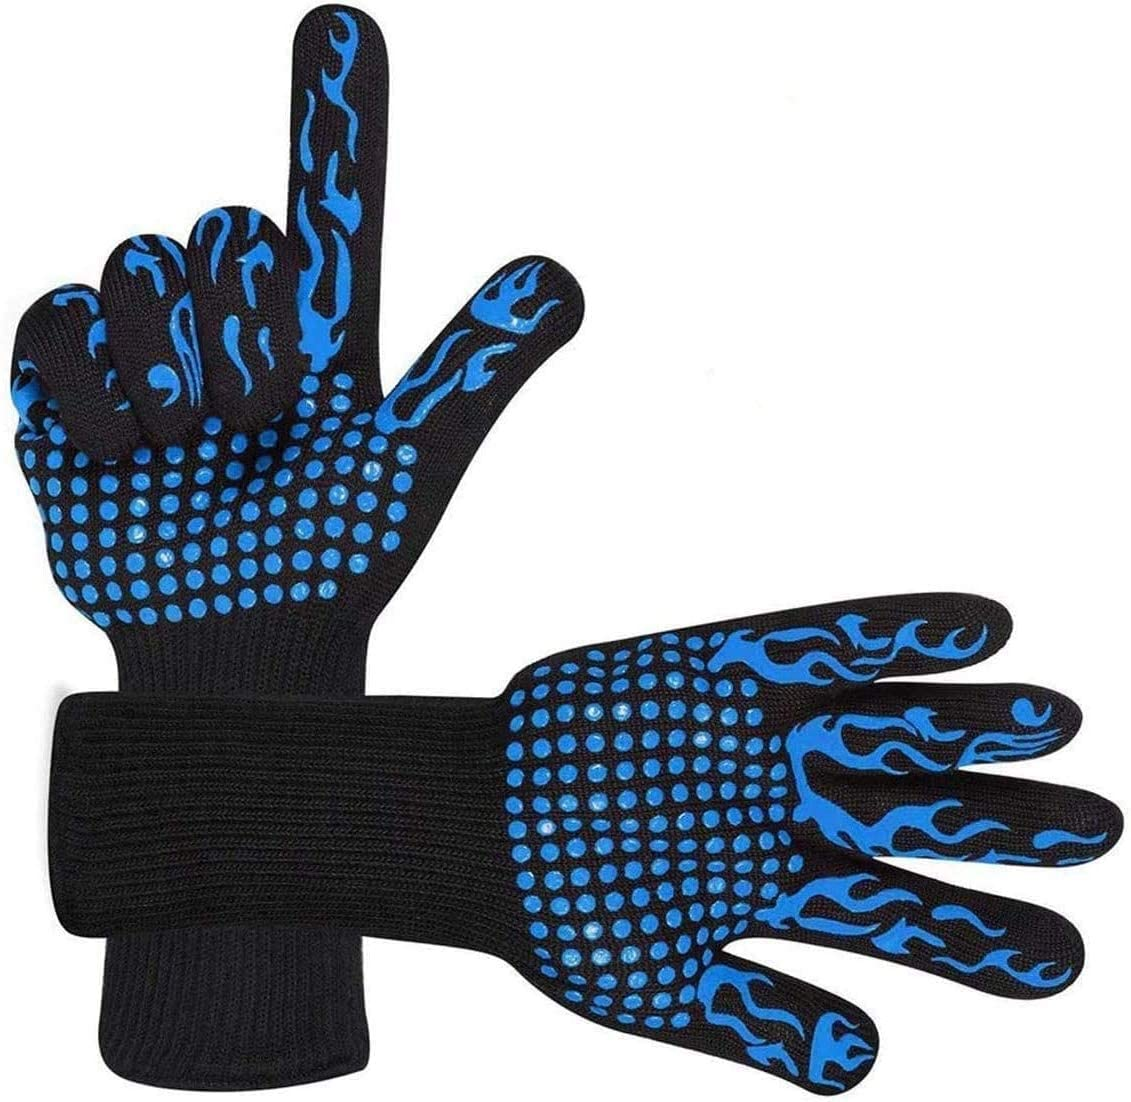 Mamilafe BBQ Grilling Gloves 1472℉ Heat Resistant Non-Slip Extra Long Wrist Oven Gloves for Grilling, Baking, Cooking, Welding, Cutting, Blue